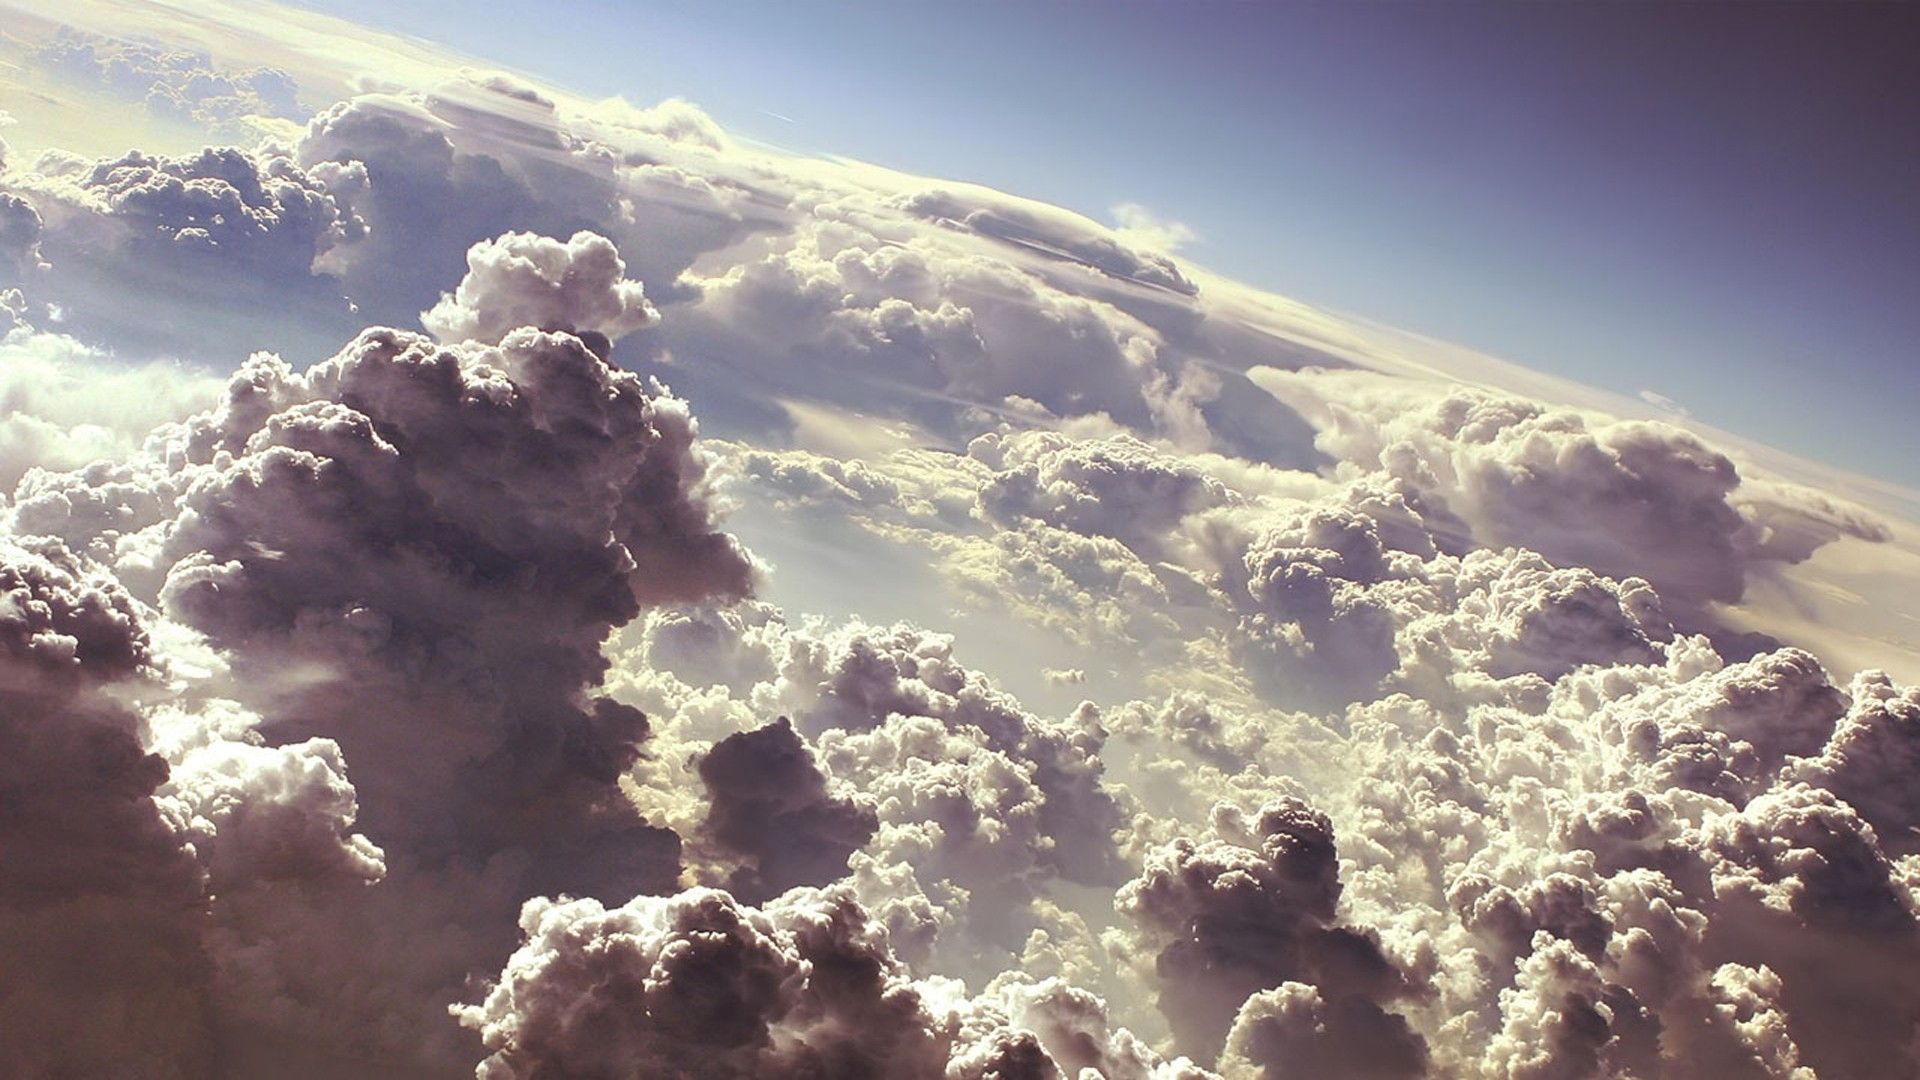 Blackmill clouds download cloud background images hd wallpaper download cloud like a - Hd clouds for photoshop ...